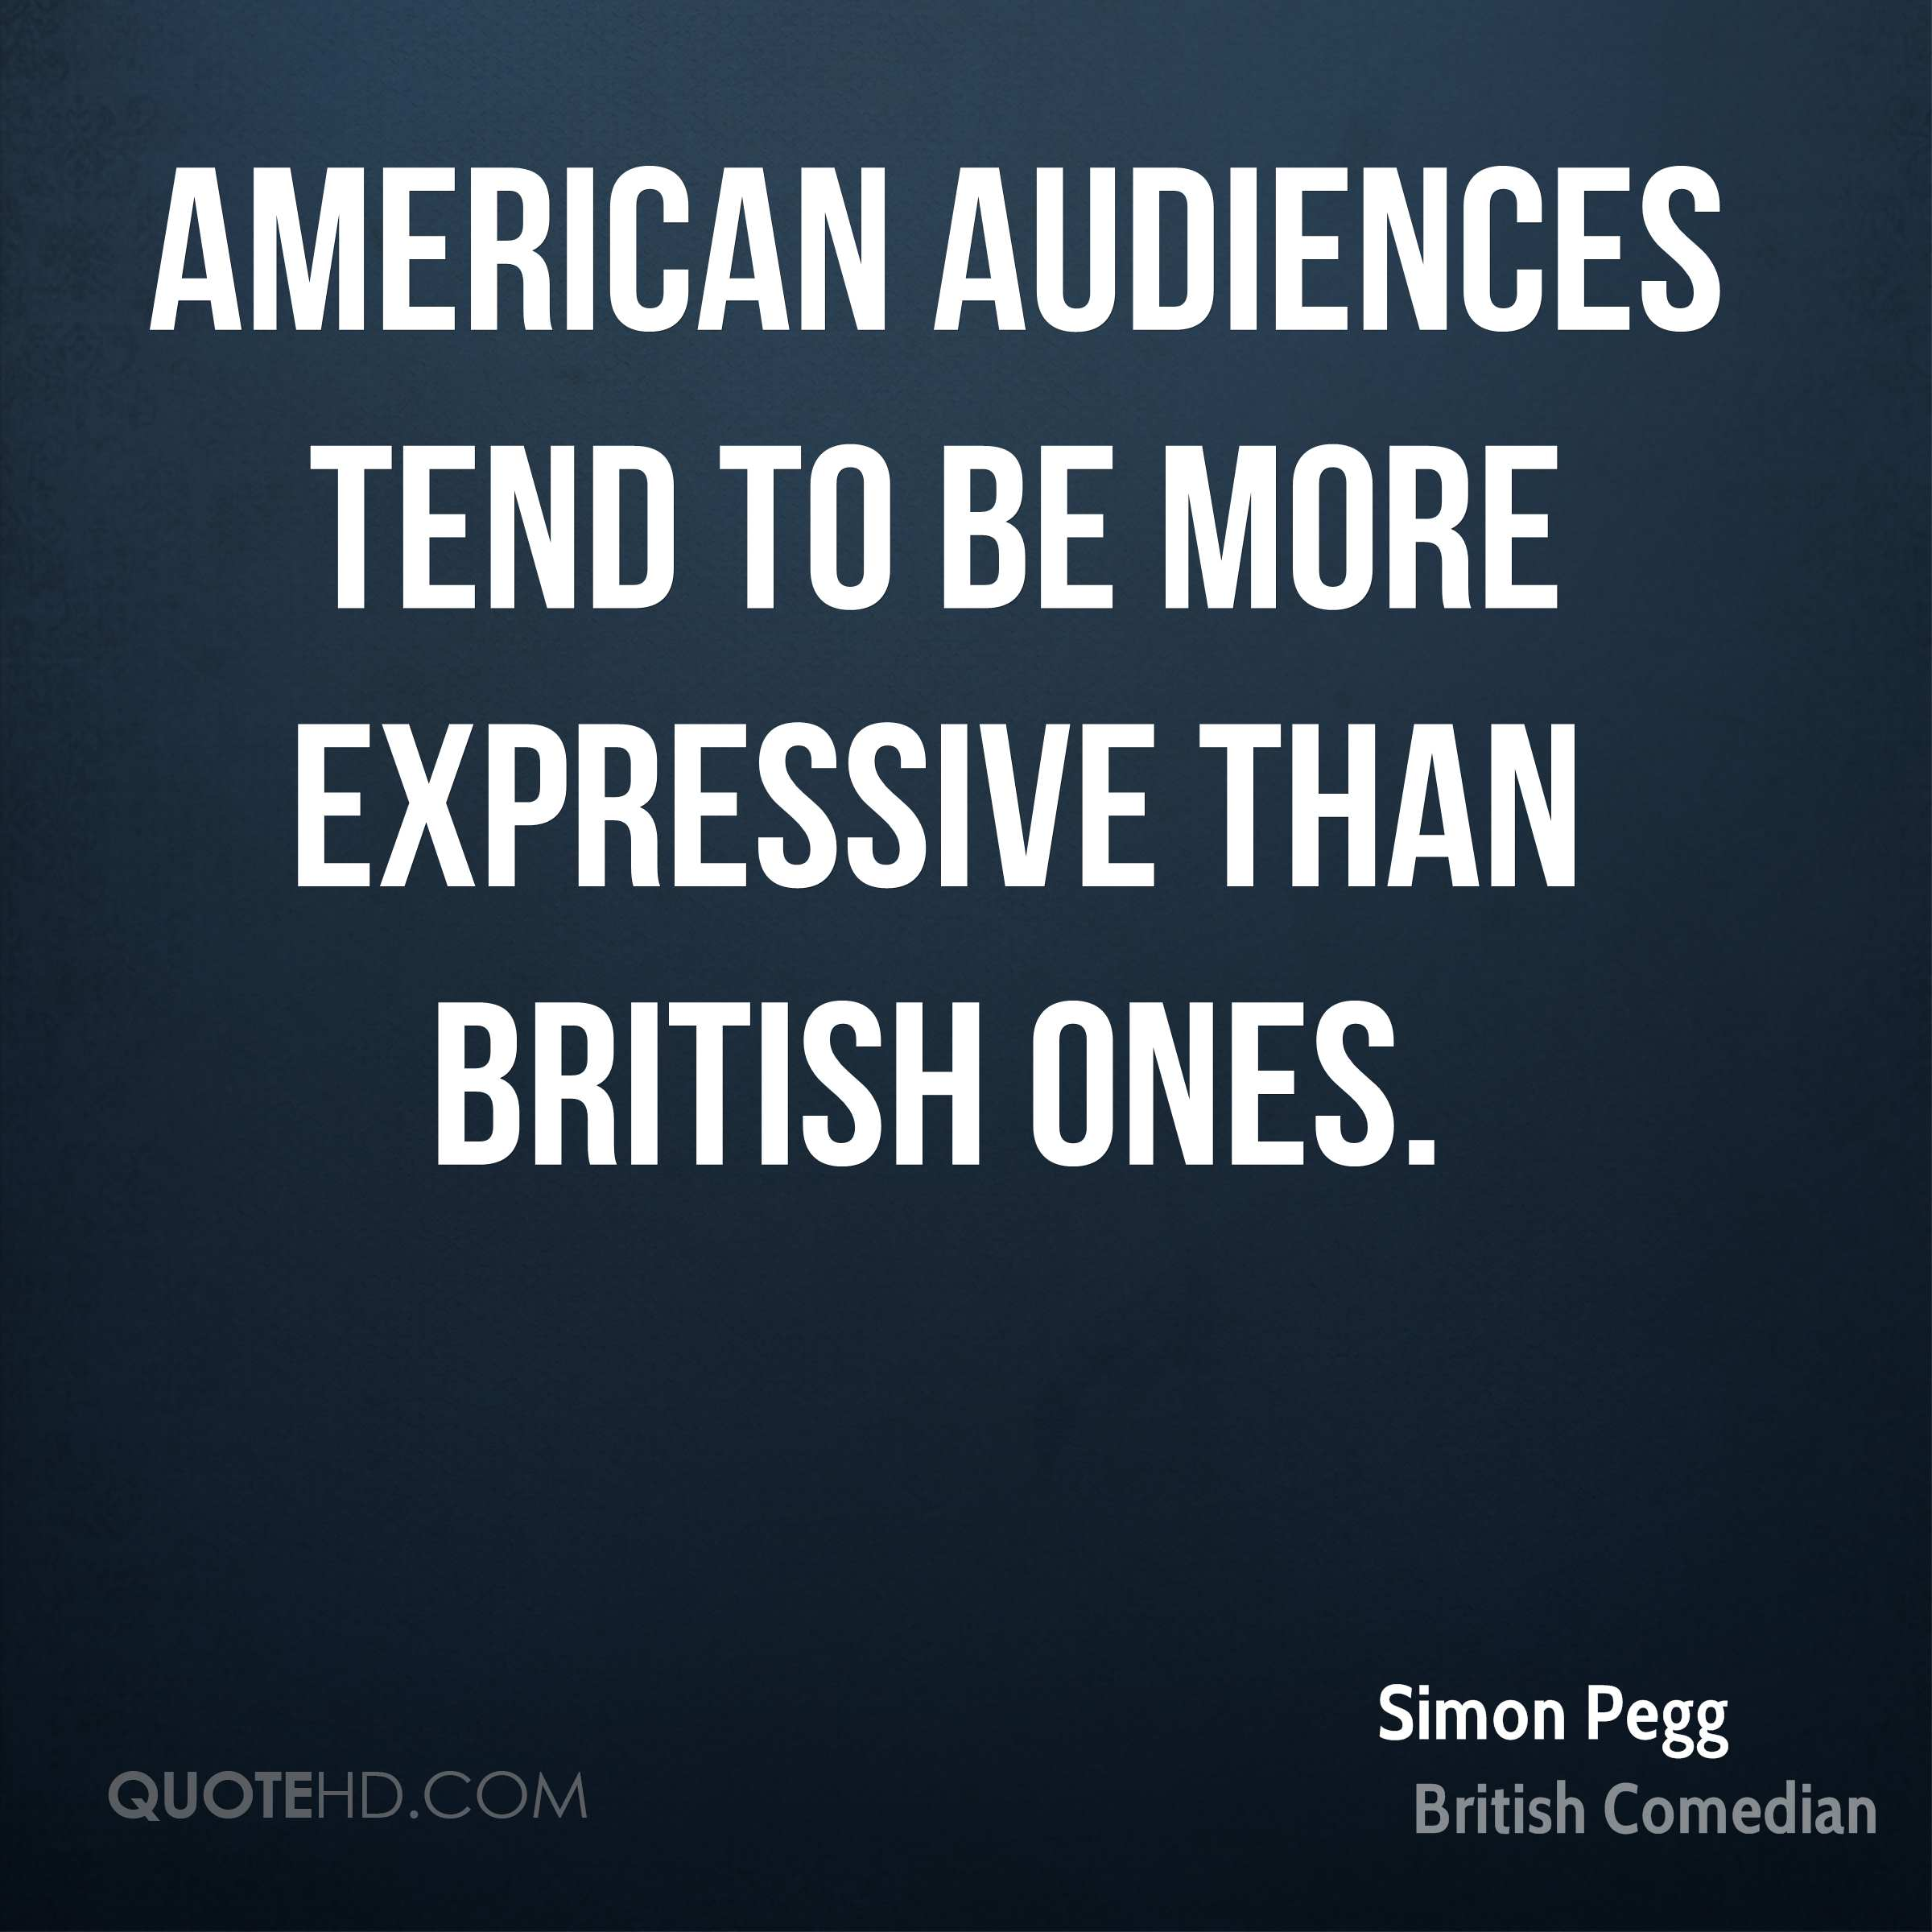 American audiences tend to be more expressive than British ones.